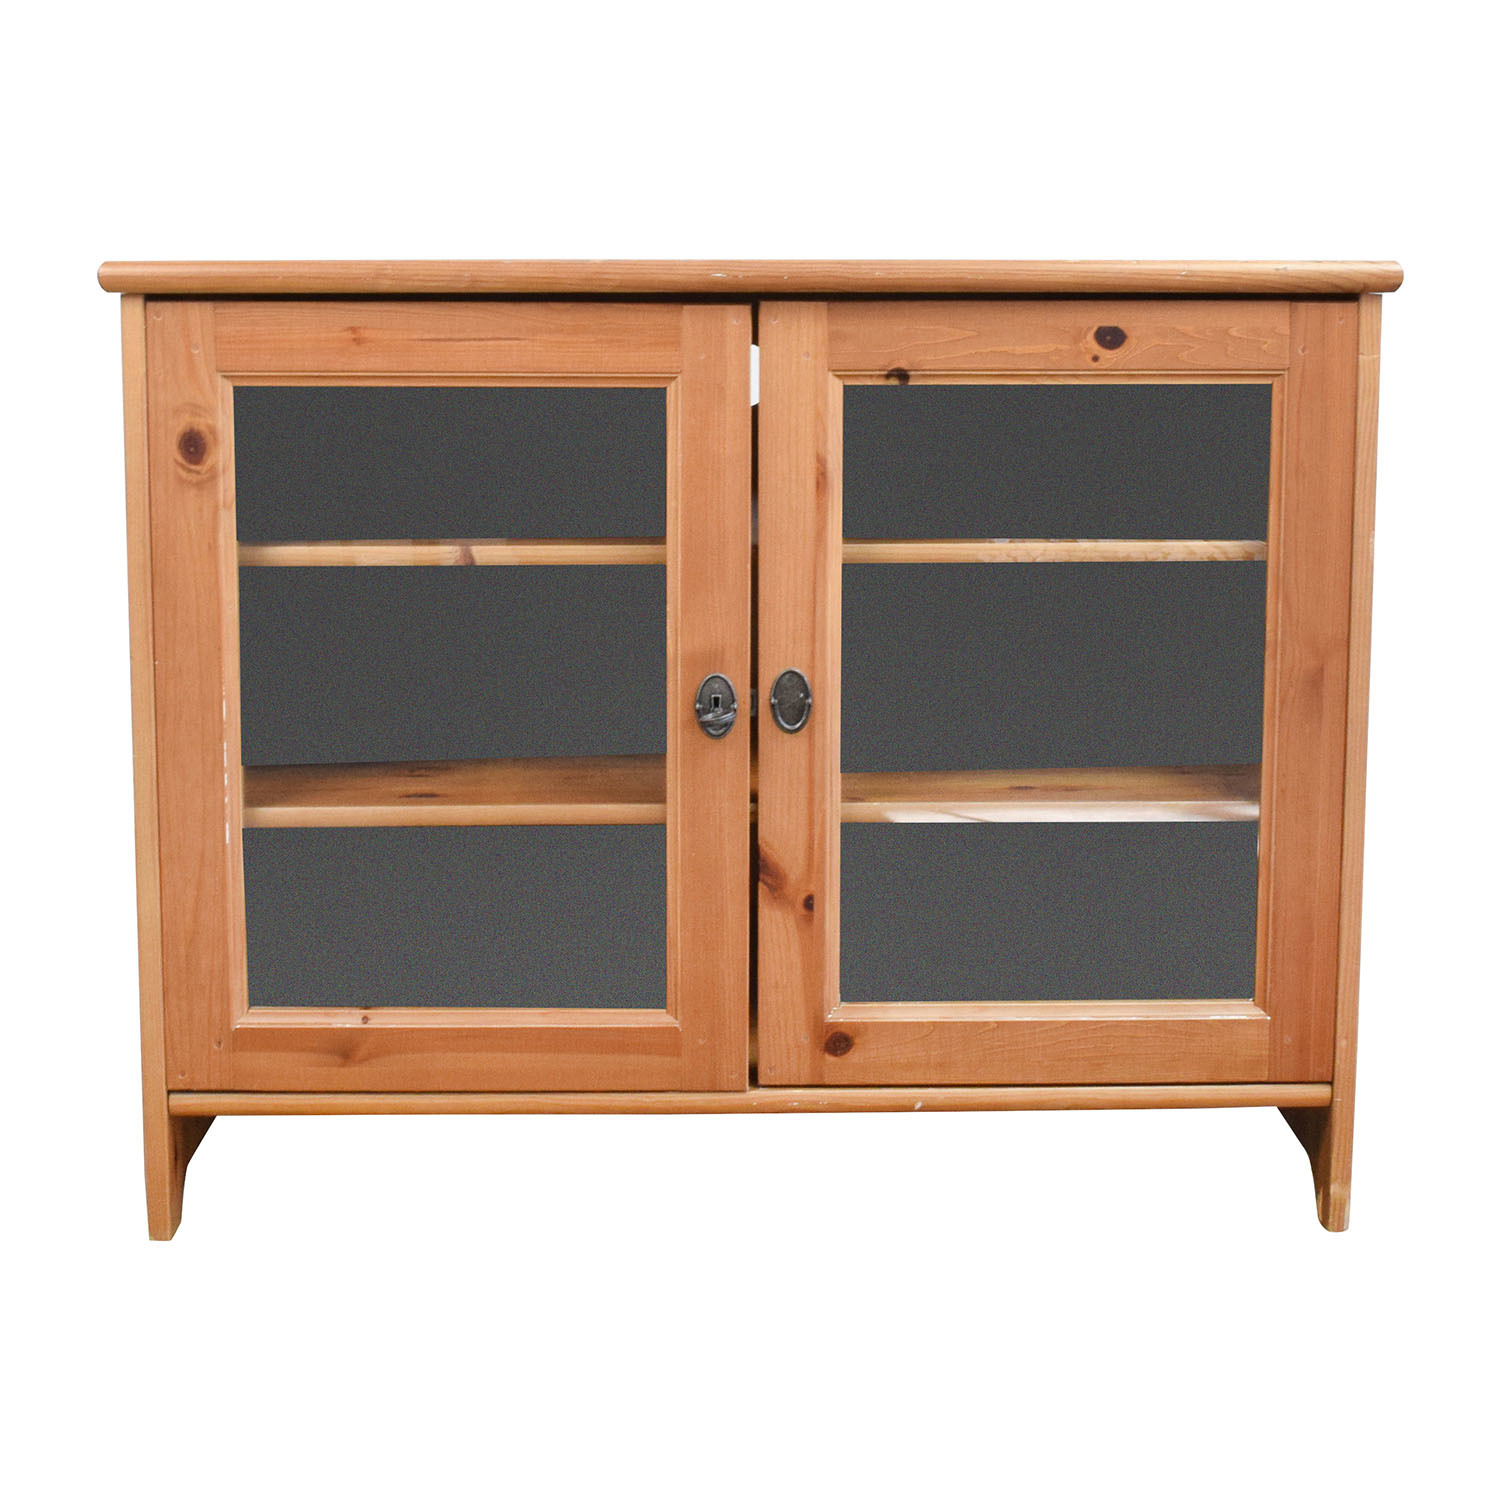 74 Off Ikea Ikea Leksvik Tv Cabinet Storage